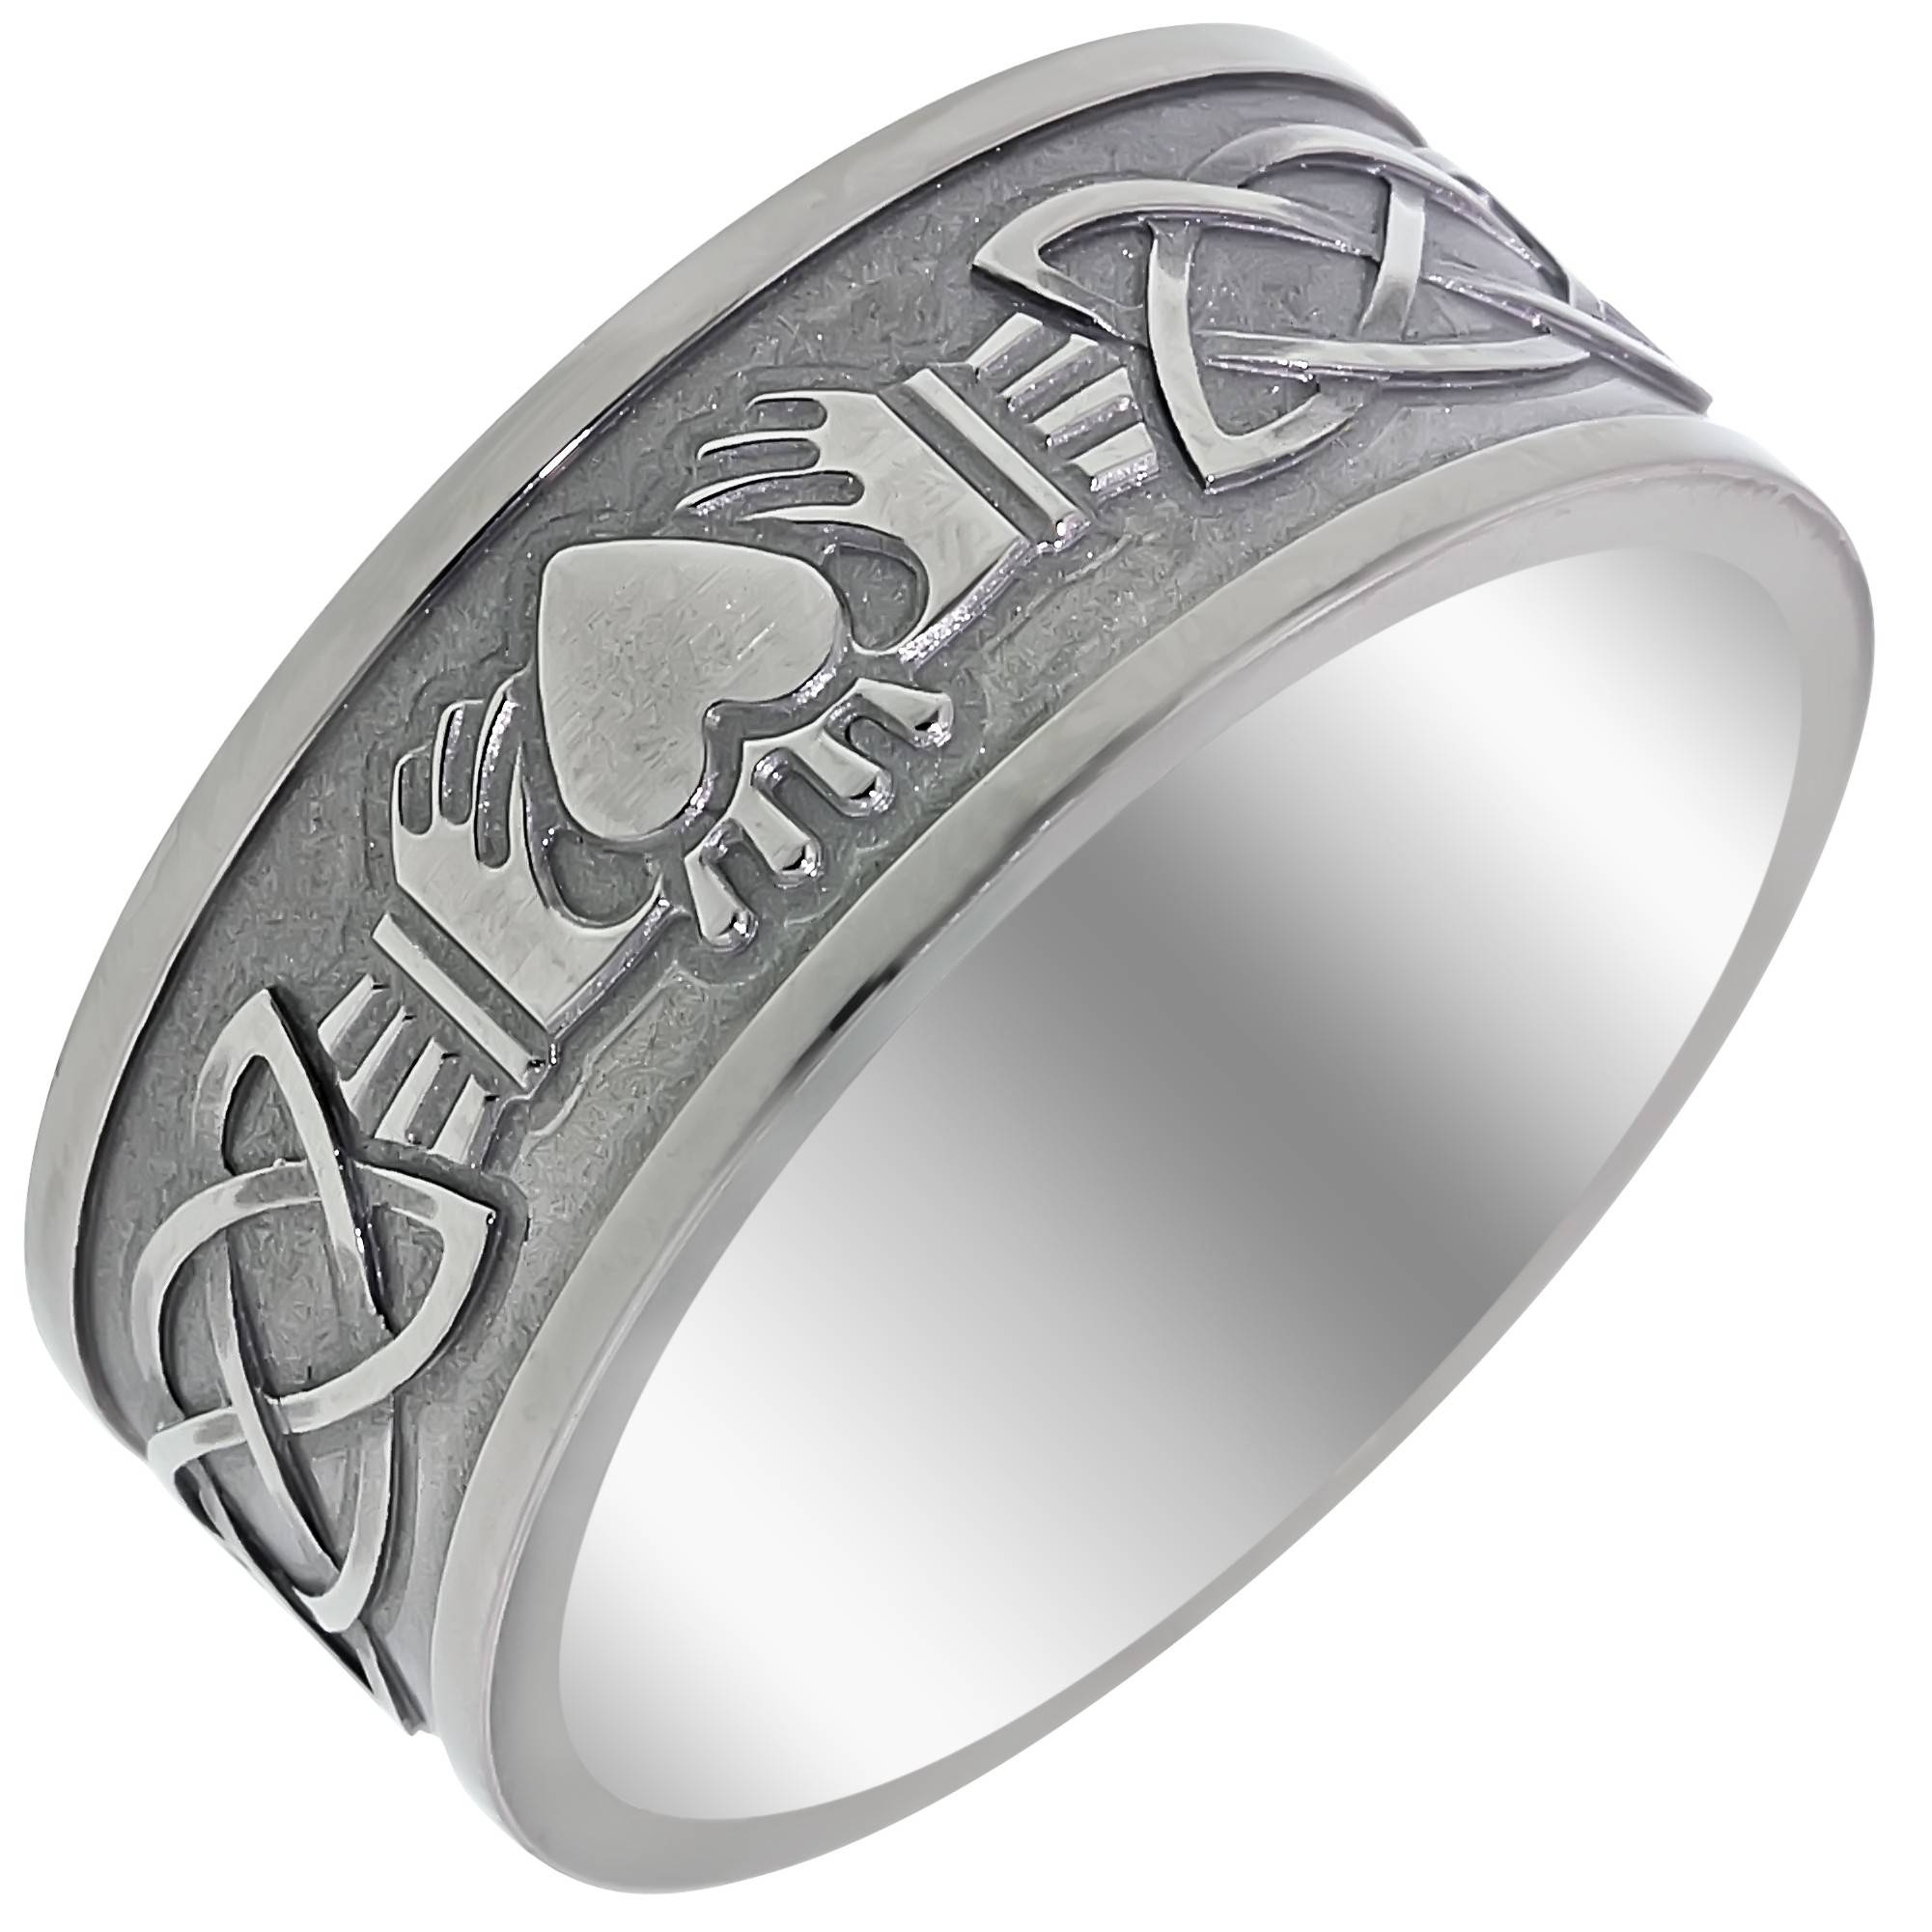 rings over claddagh elya stainless knot product wedding steel on with eternity orders jewelry shipping overstock free design ring watches celtic